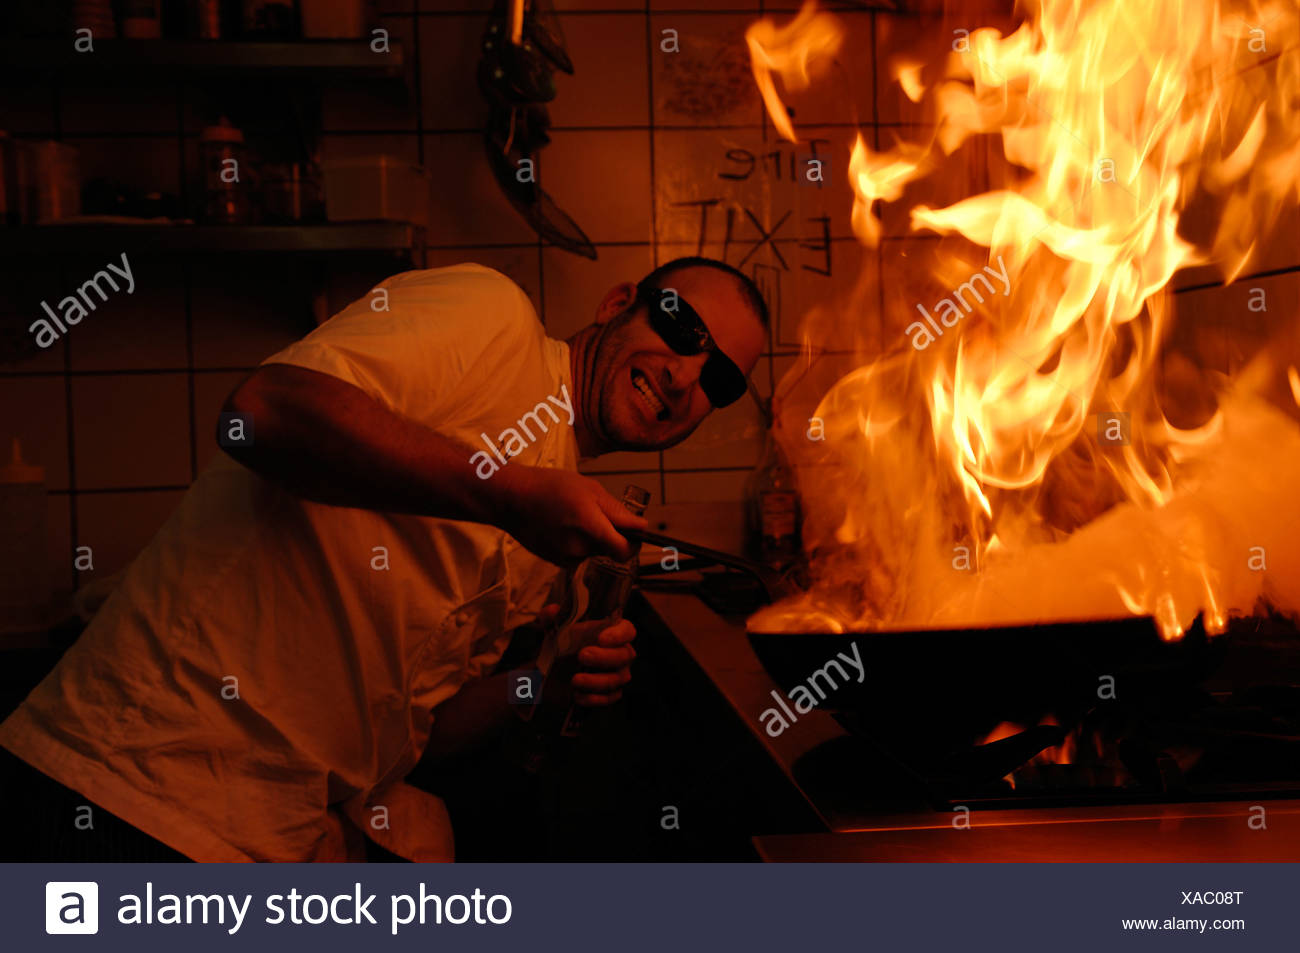 Man with sunglasses holding a burning pan on the stove - Stock Image